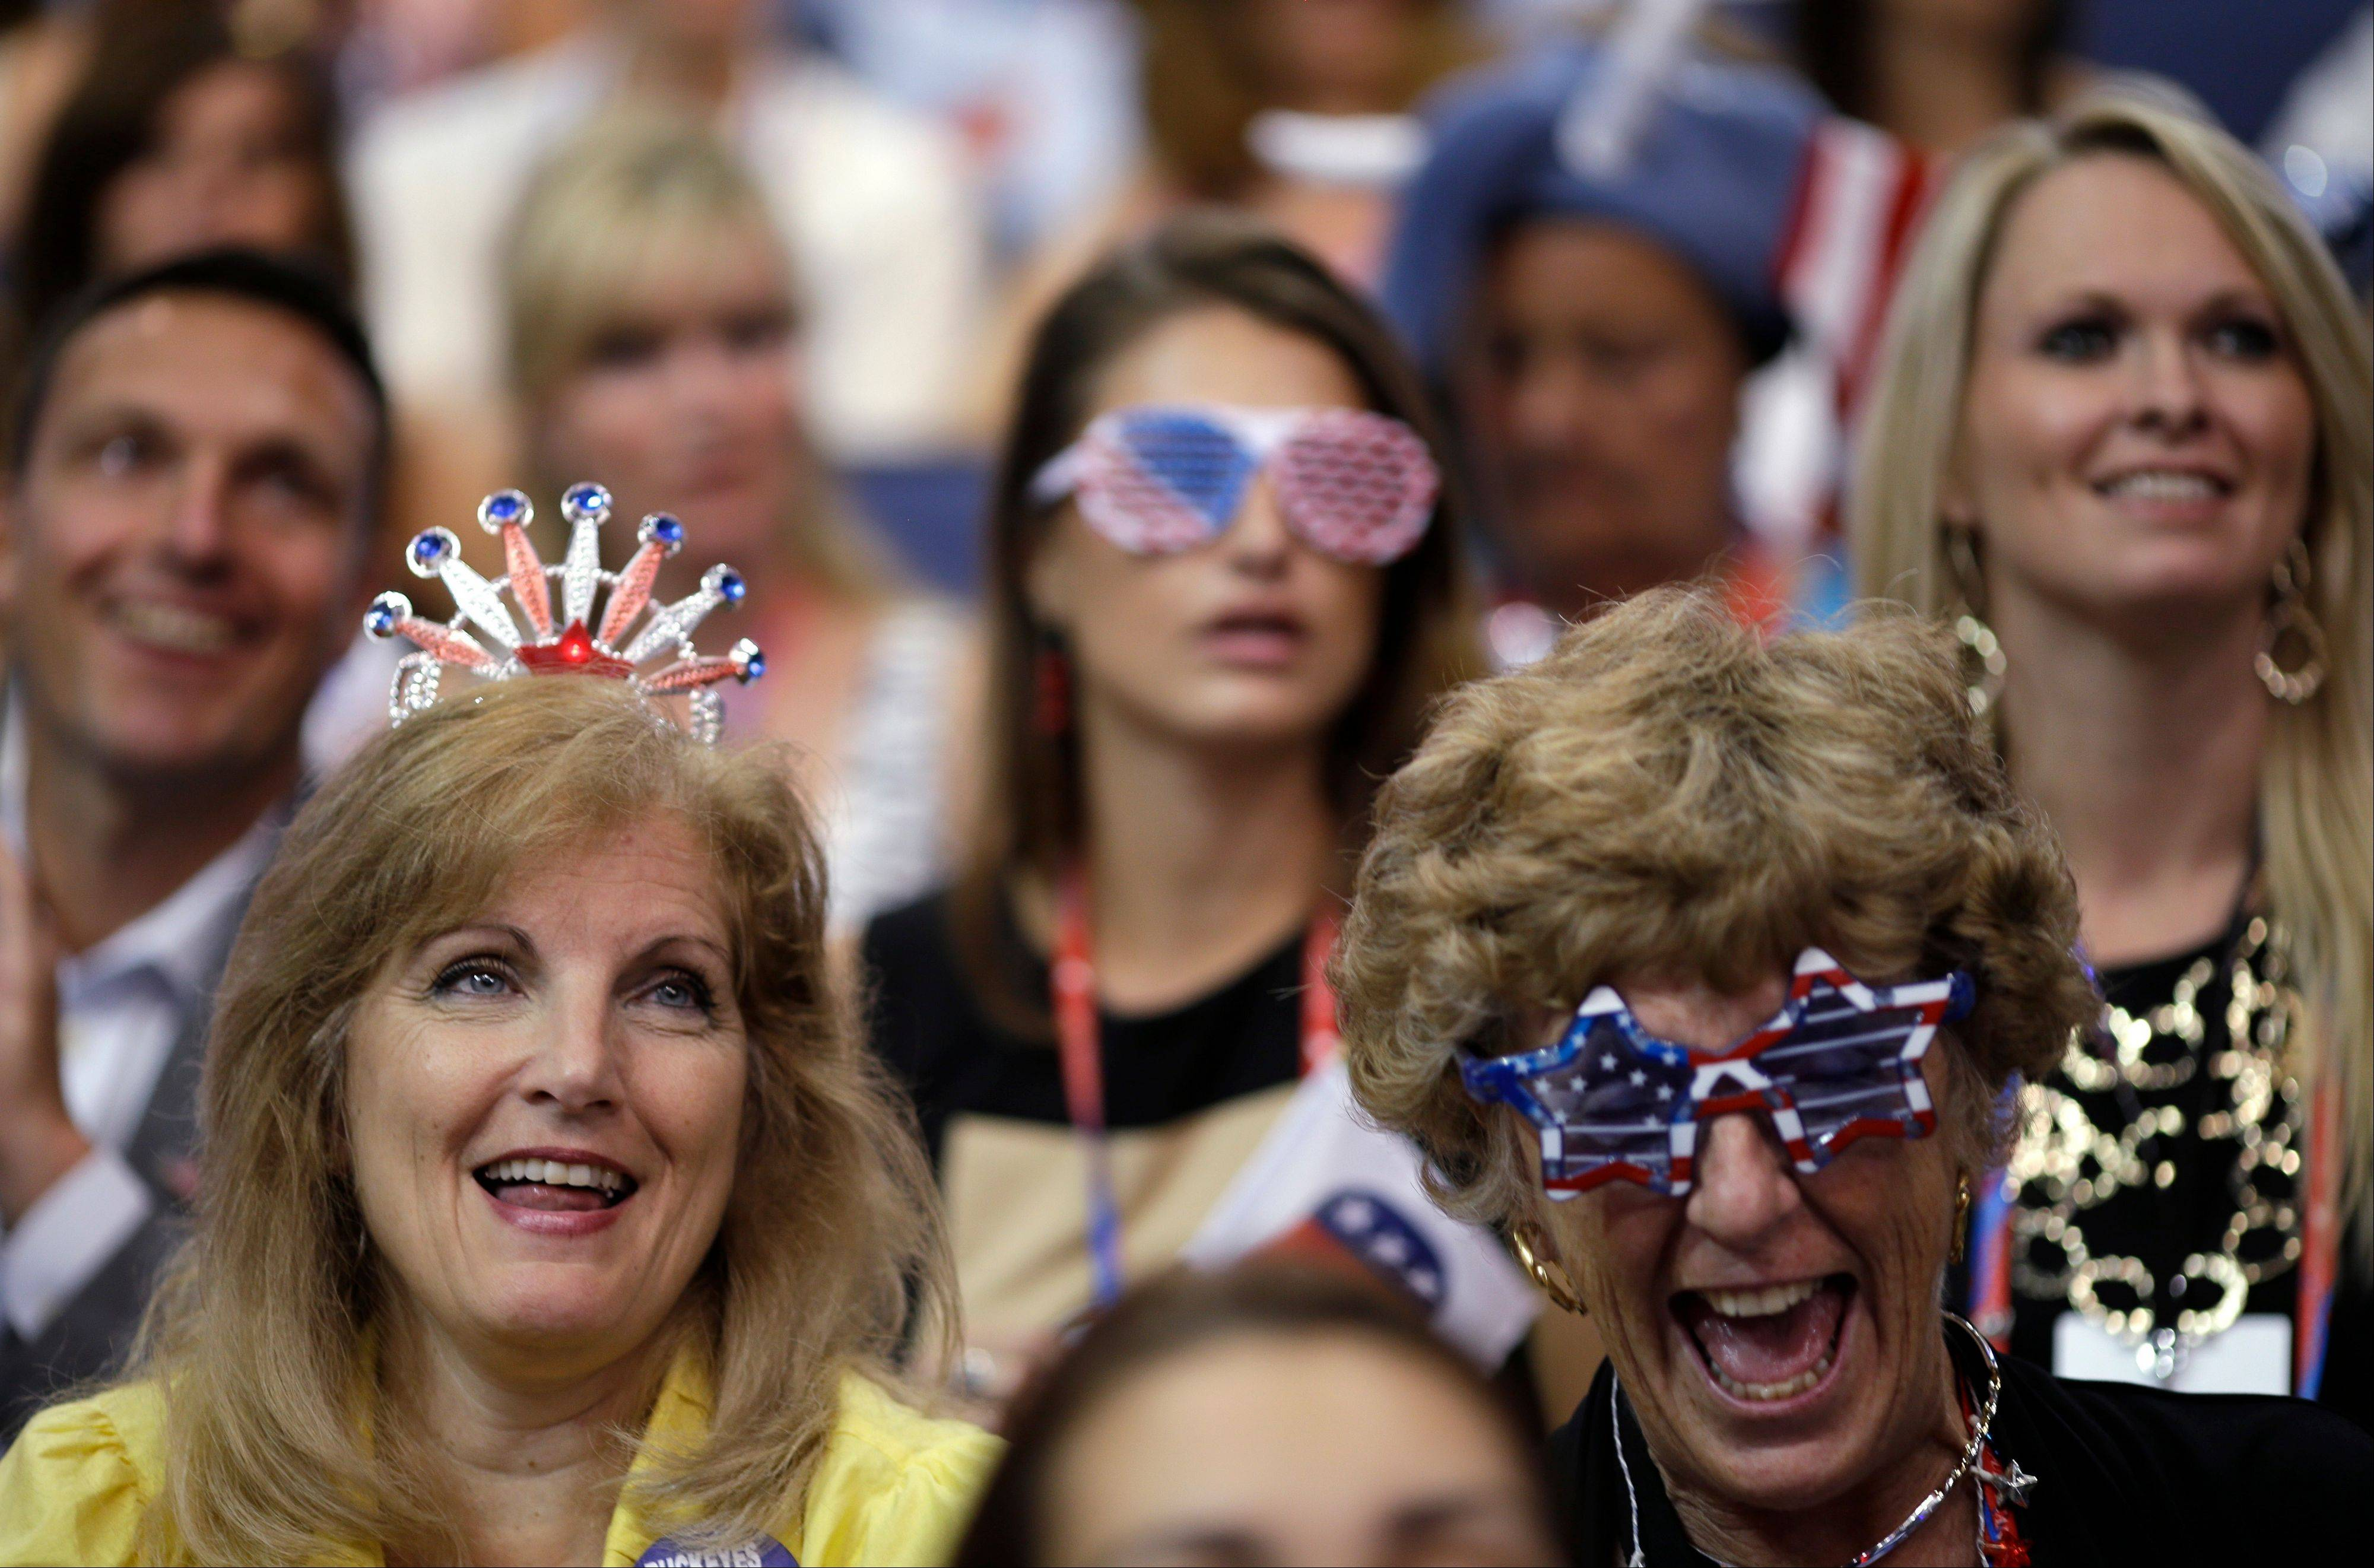 Ohio delegates Becky Lynch, left, from Menton, and Lyn Bliss from Greenville react during the Republican National Convention in Tampa, Fla., on Thursday, Aug. 30, 2012.